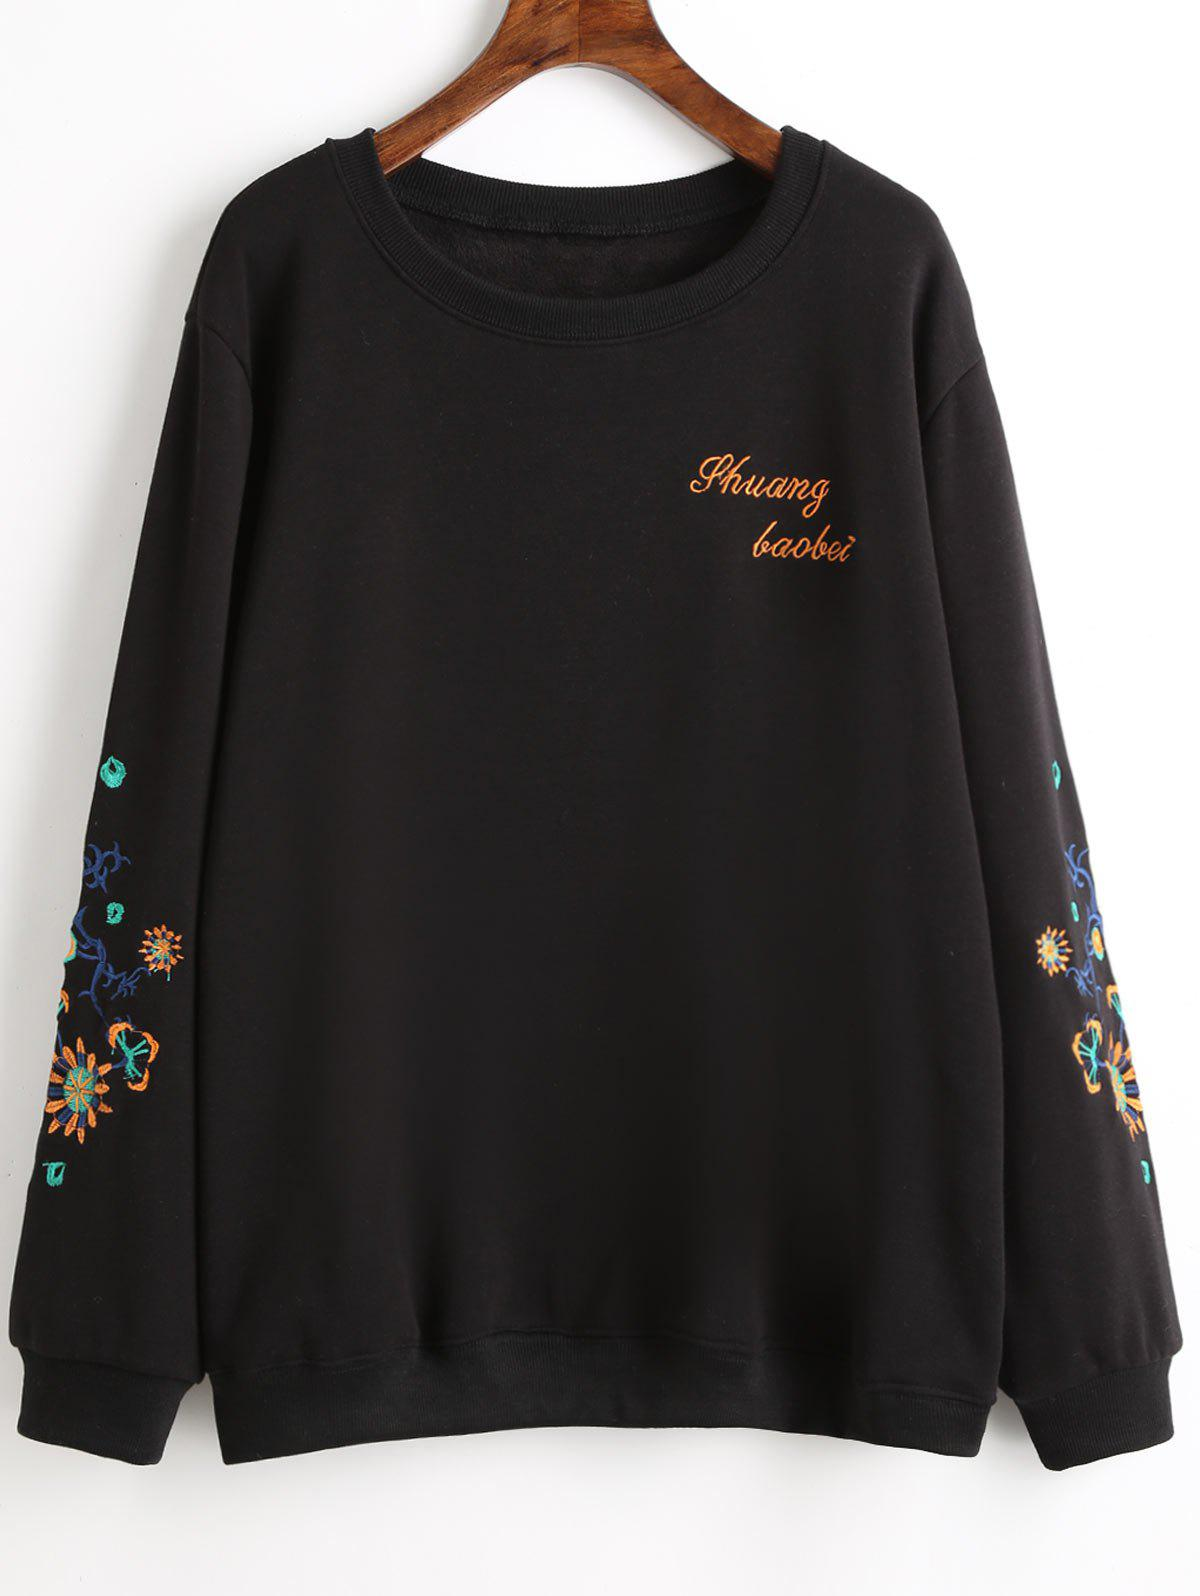 Graphic Embroidered Plus Size Fleece Lined Sweatshirt crew neck graphic embroidered appliques fleece sweatshirt